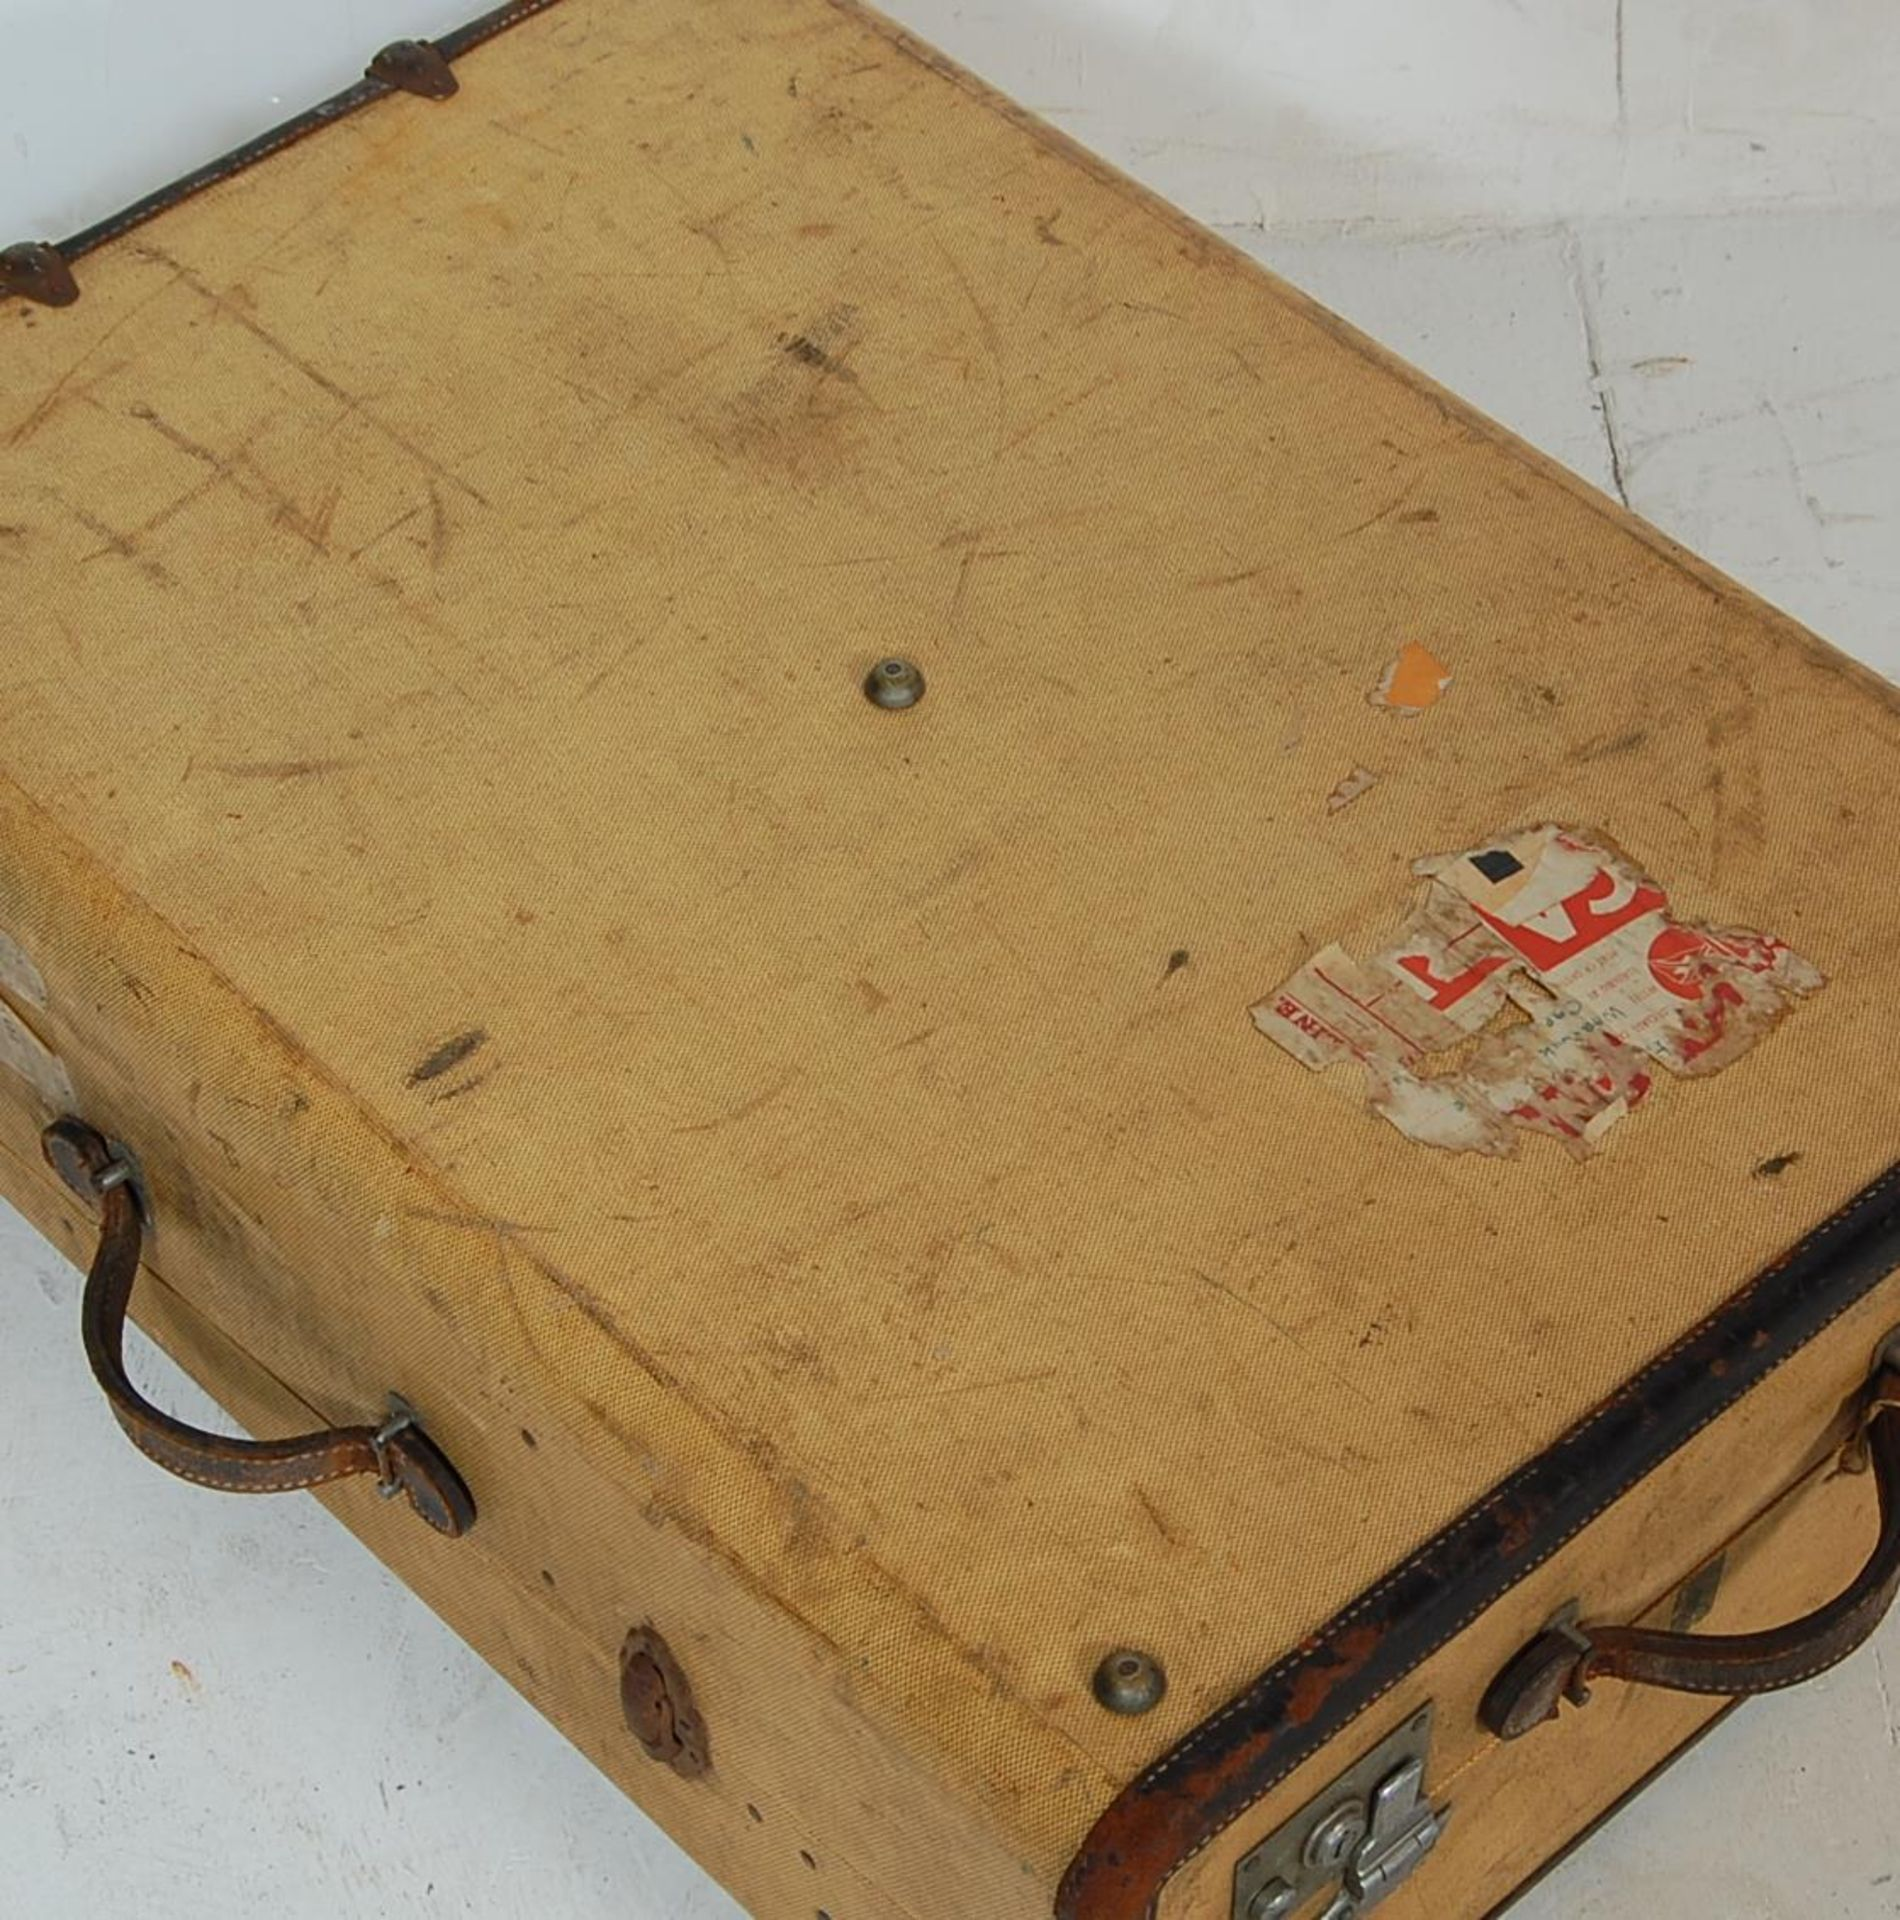 COLLECTION OF THREE EARLY 20TH CENTURY STEAMER TRUNKS - Image 3 of 12